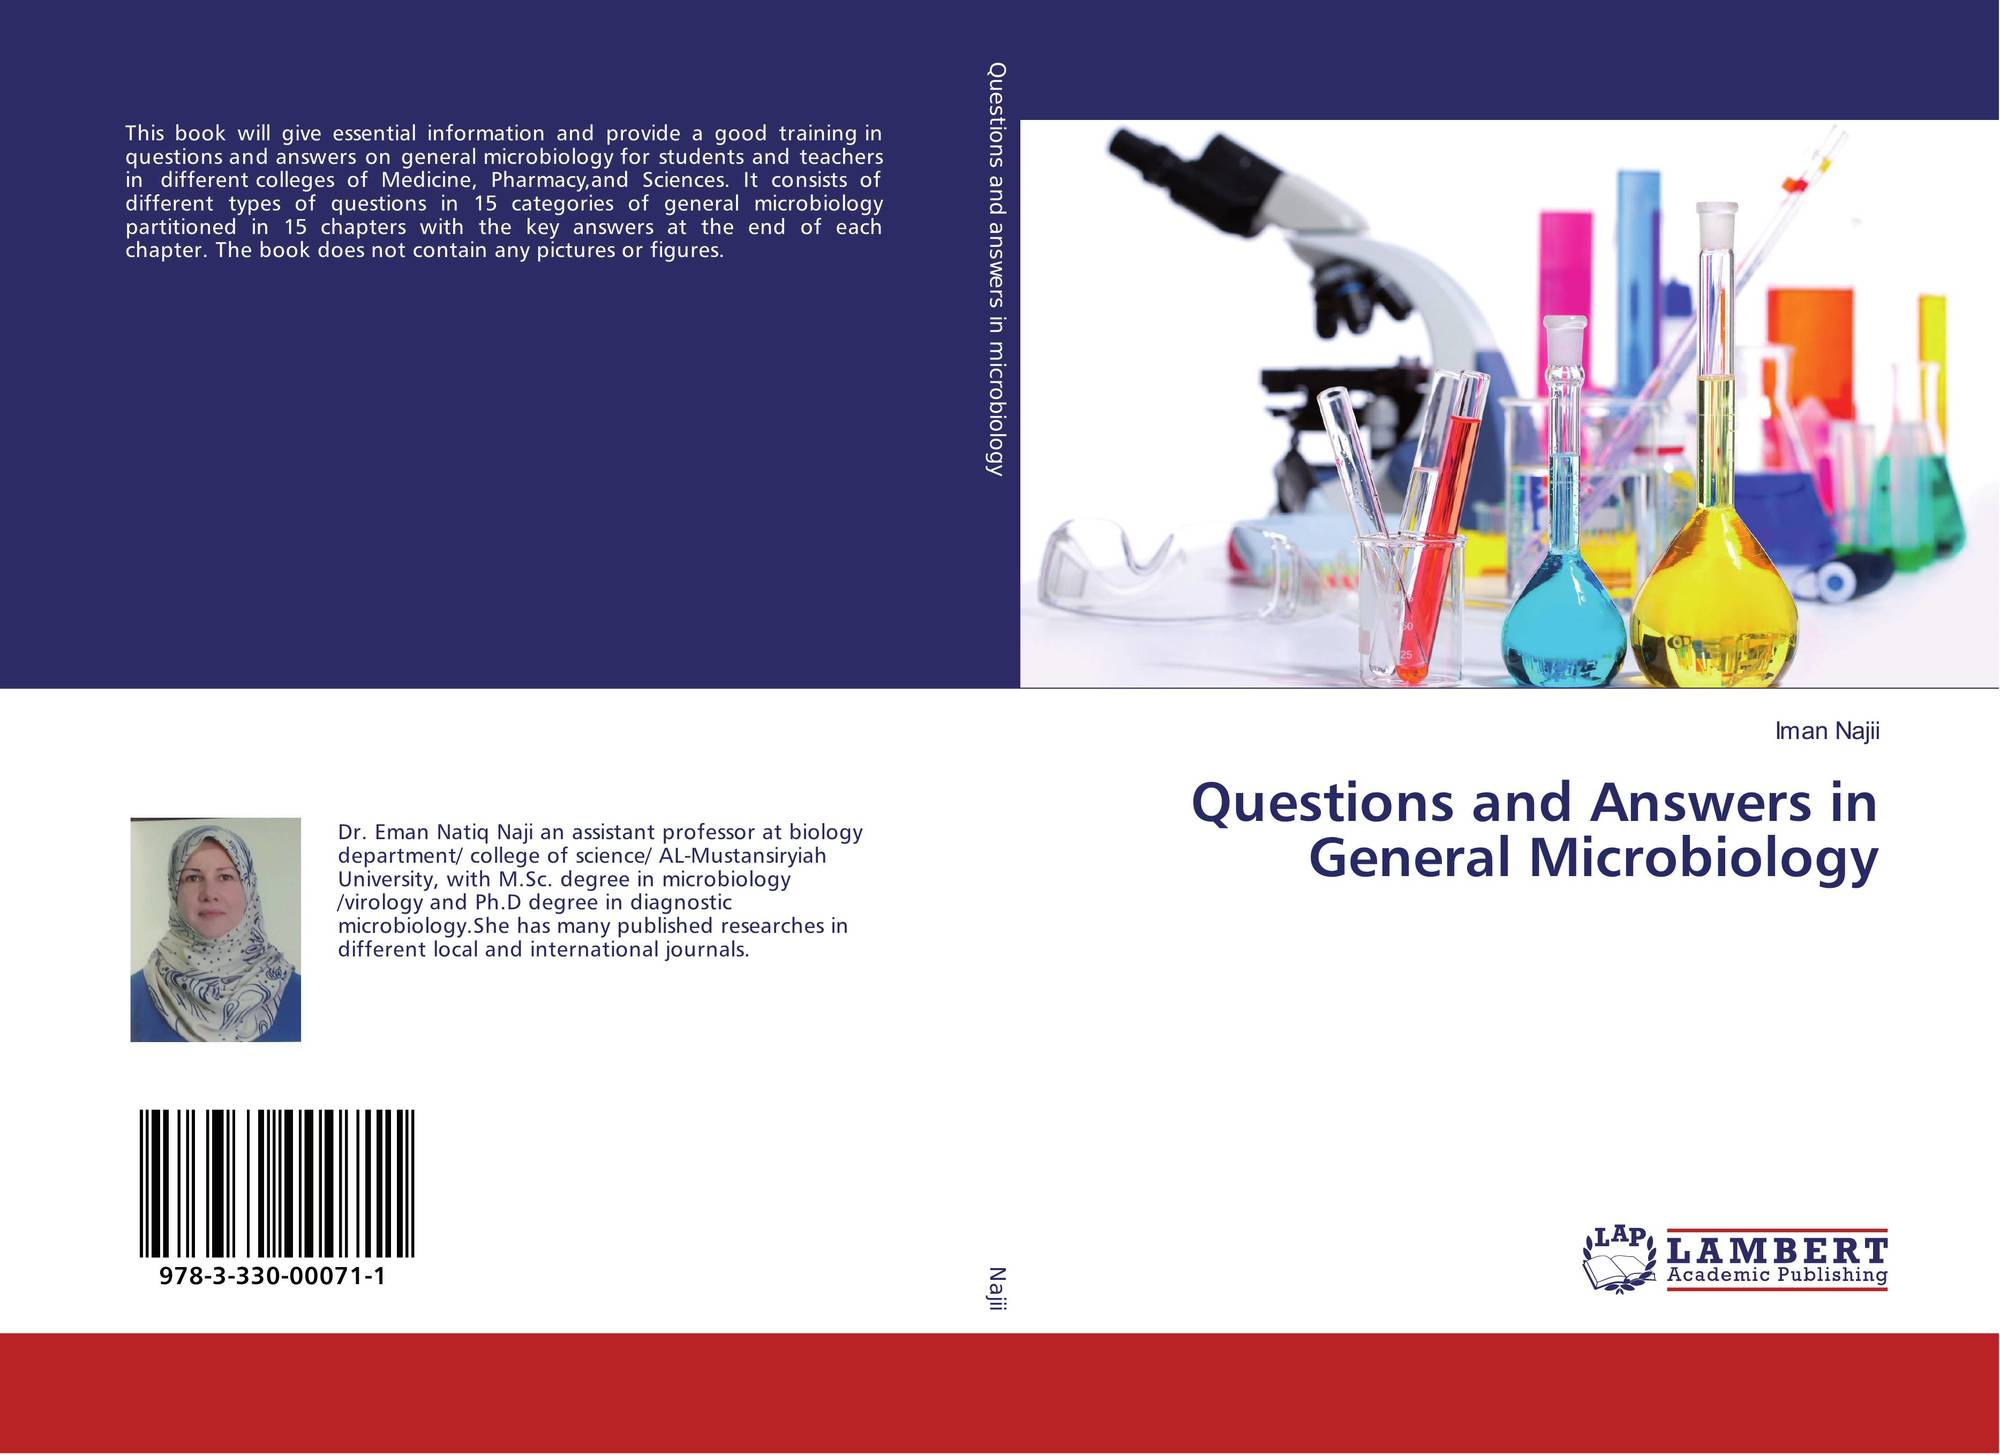 Questions and Answers in General Microbiology, 978-3-330